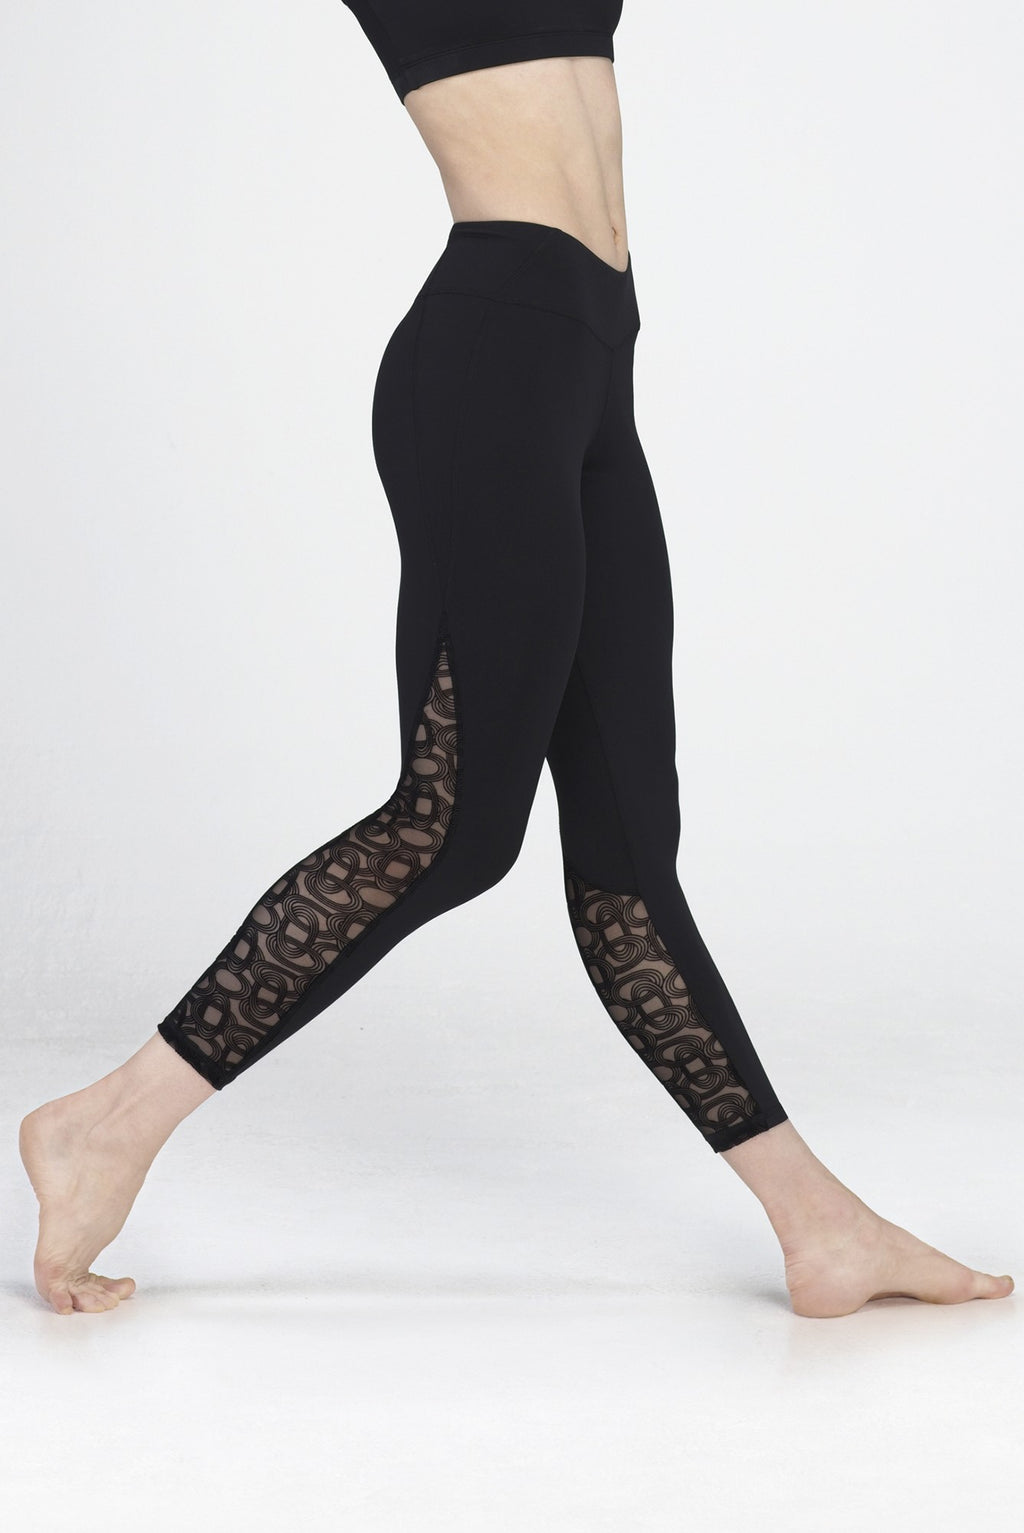 Wear Moi Patterned Mesh Leggings - Avery